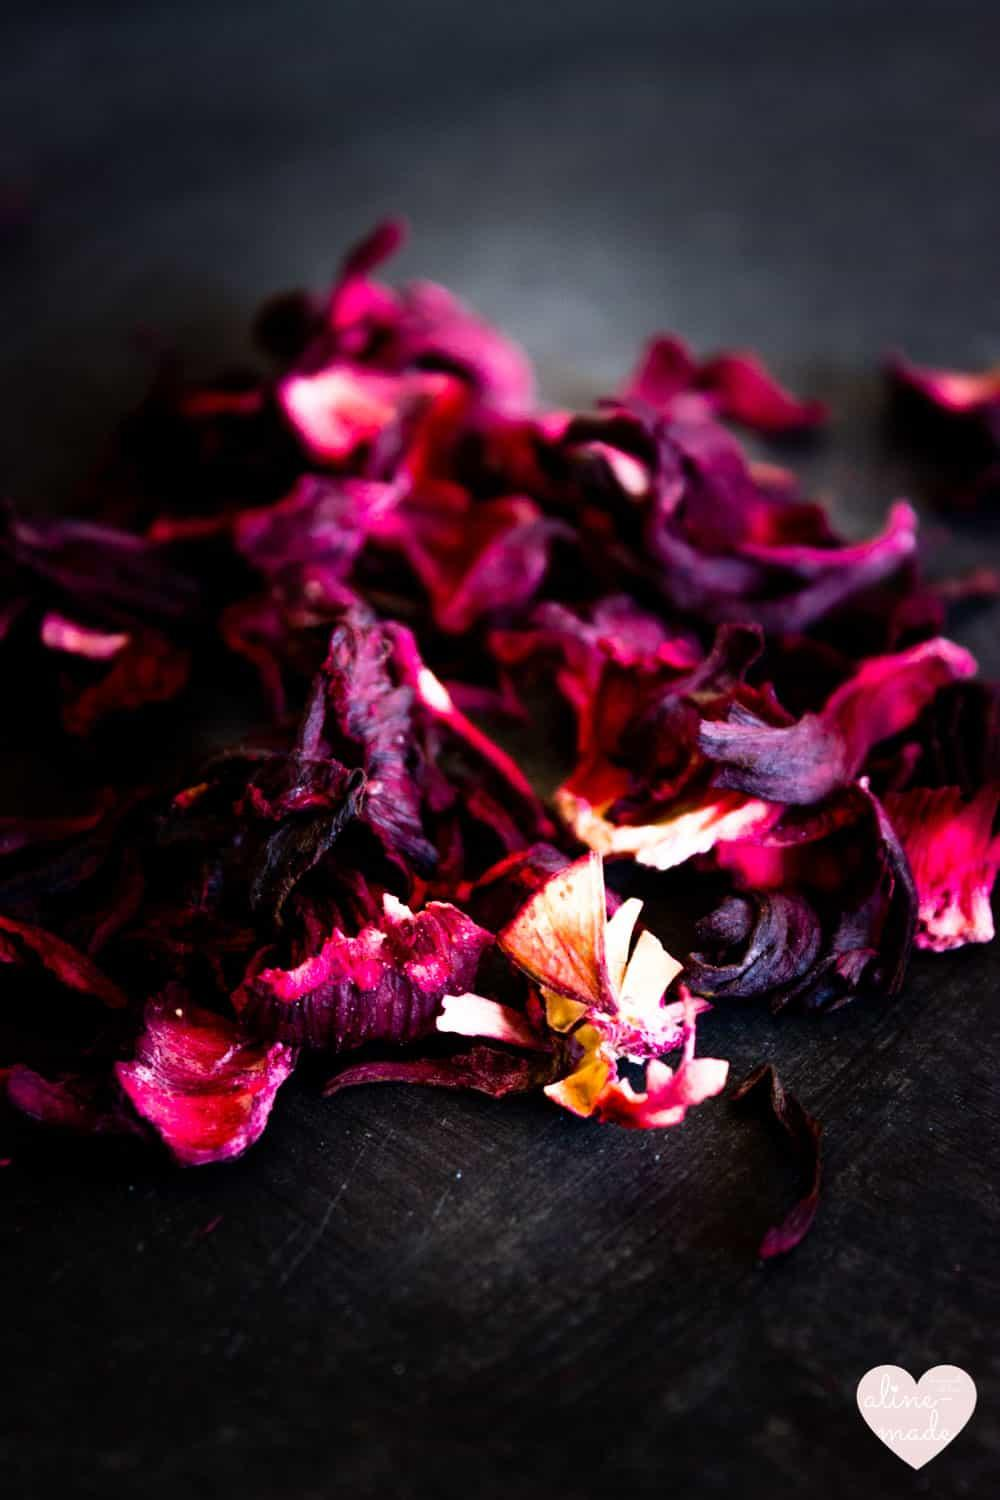 Flor de Jamaica - Dried Hibiscus Flowers | Have an intense pink color & are very beautiful!